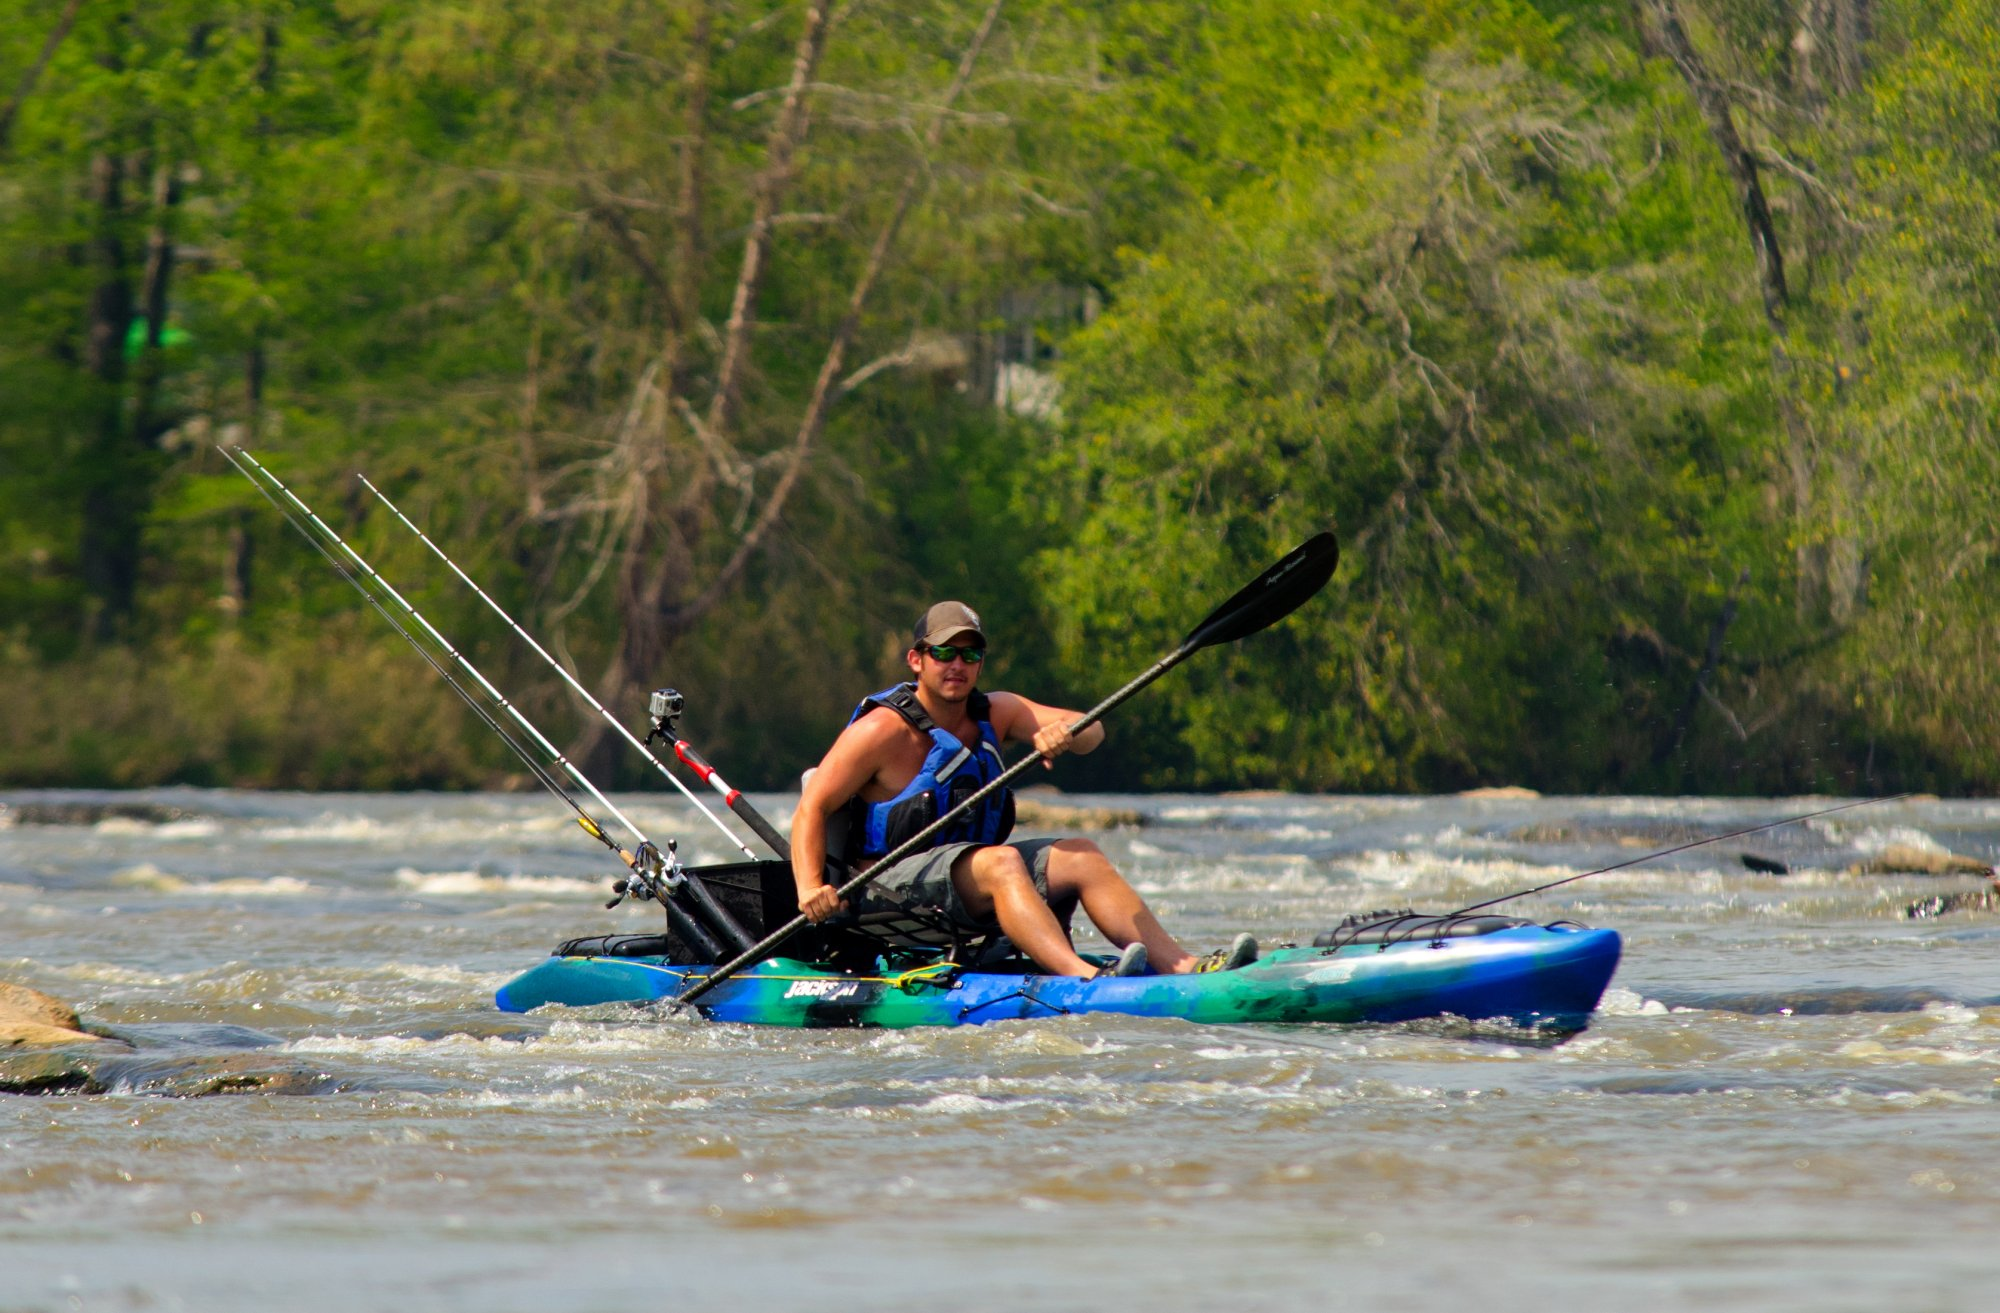 Jackson 2017 coosa fishing kayak for New fishing kayaks 2017